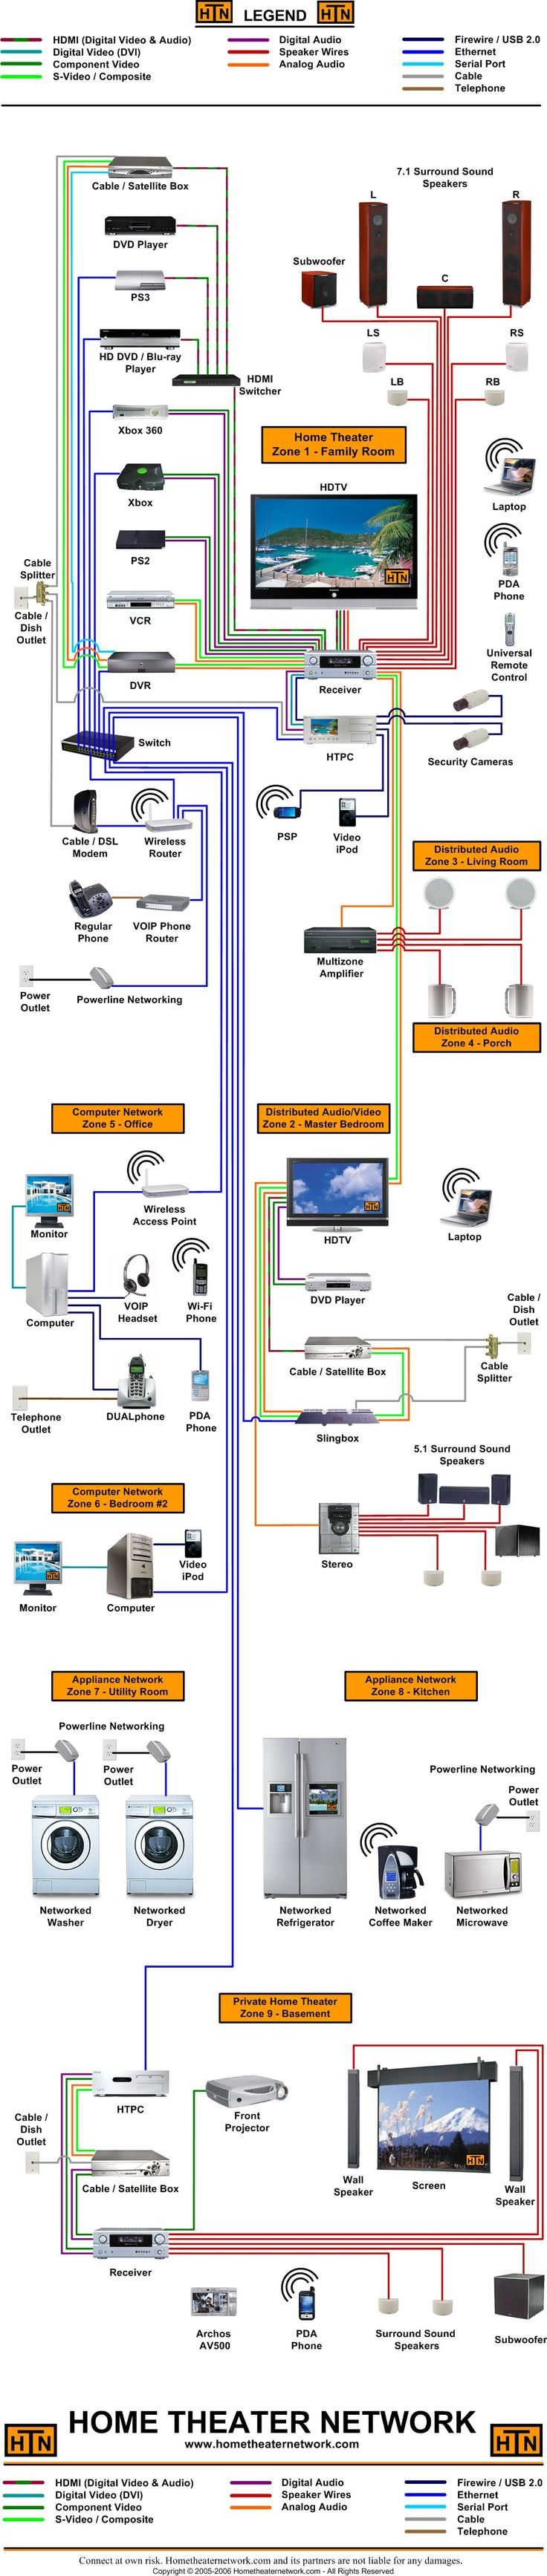 42 Best Home Networking Images On Pinterest